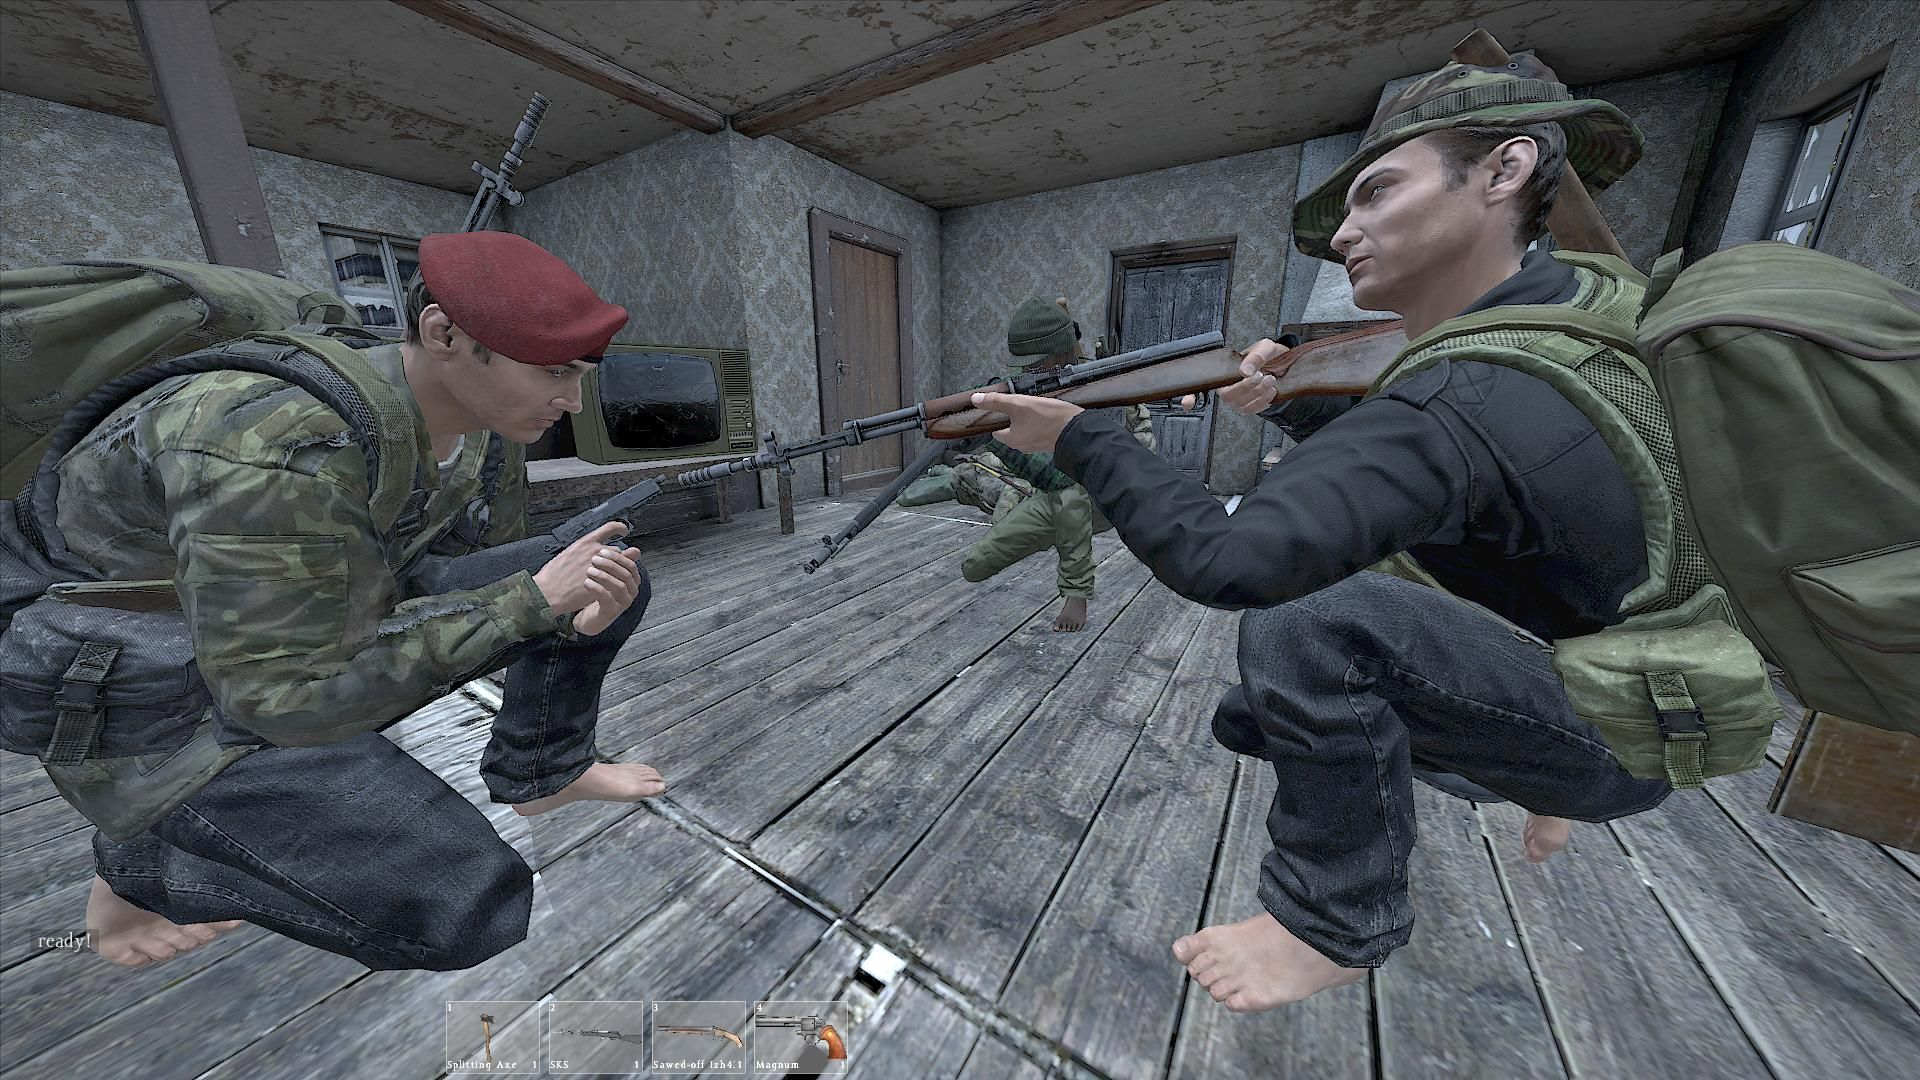 One of the teams in DayZ Standalone #dayzsa